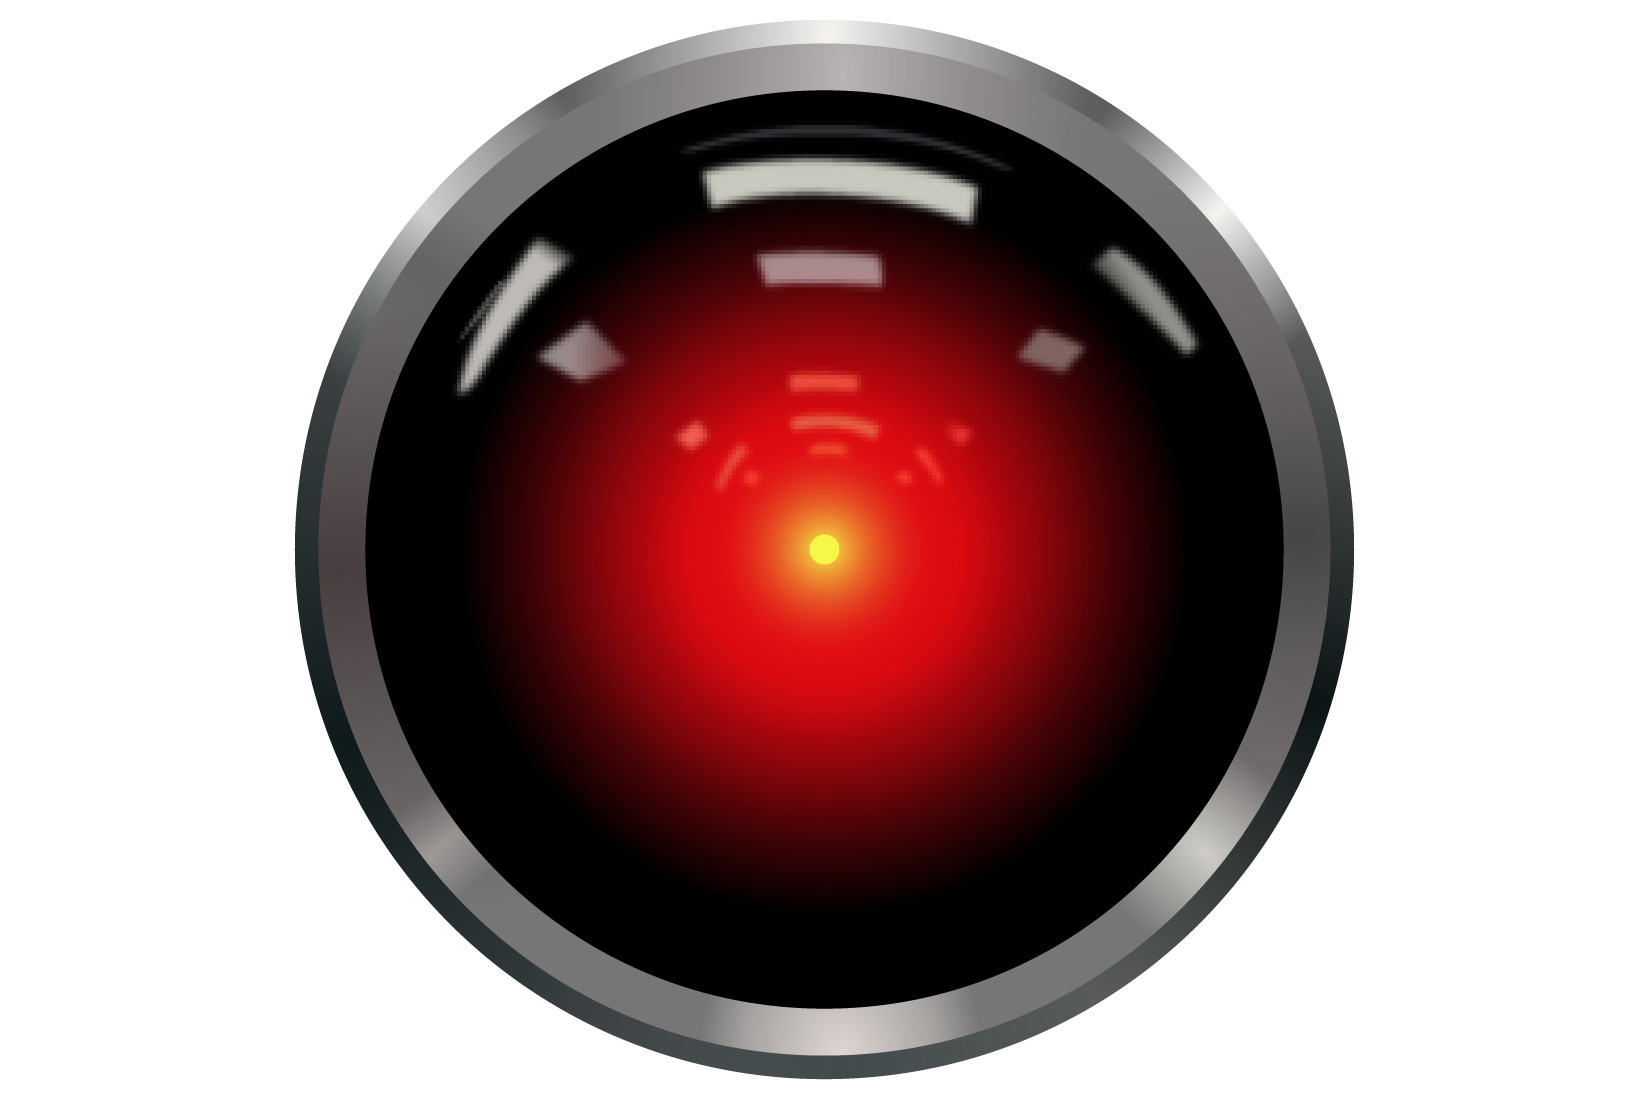 HAL 9000 by Cryteria. Licensed under CC BY 3.0.